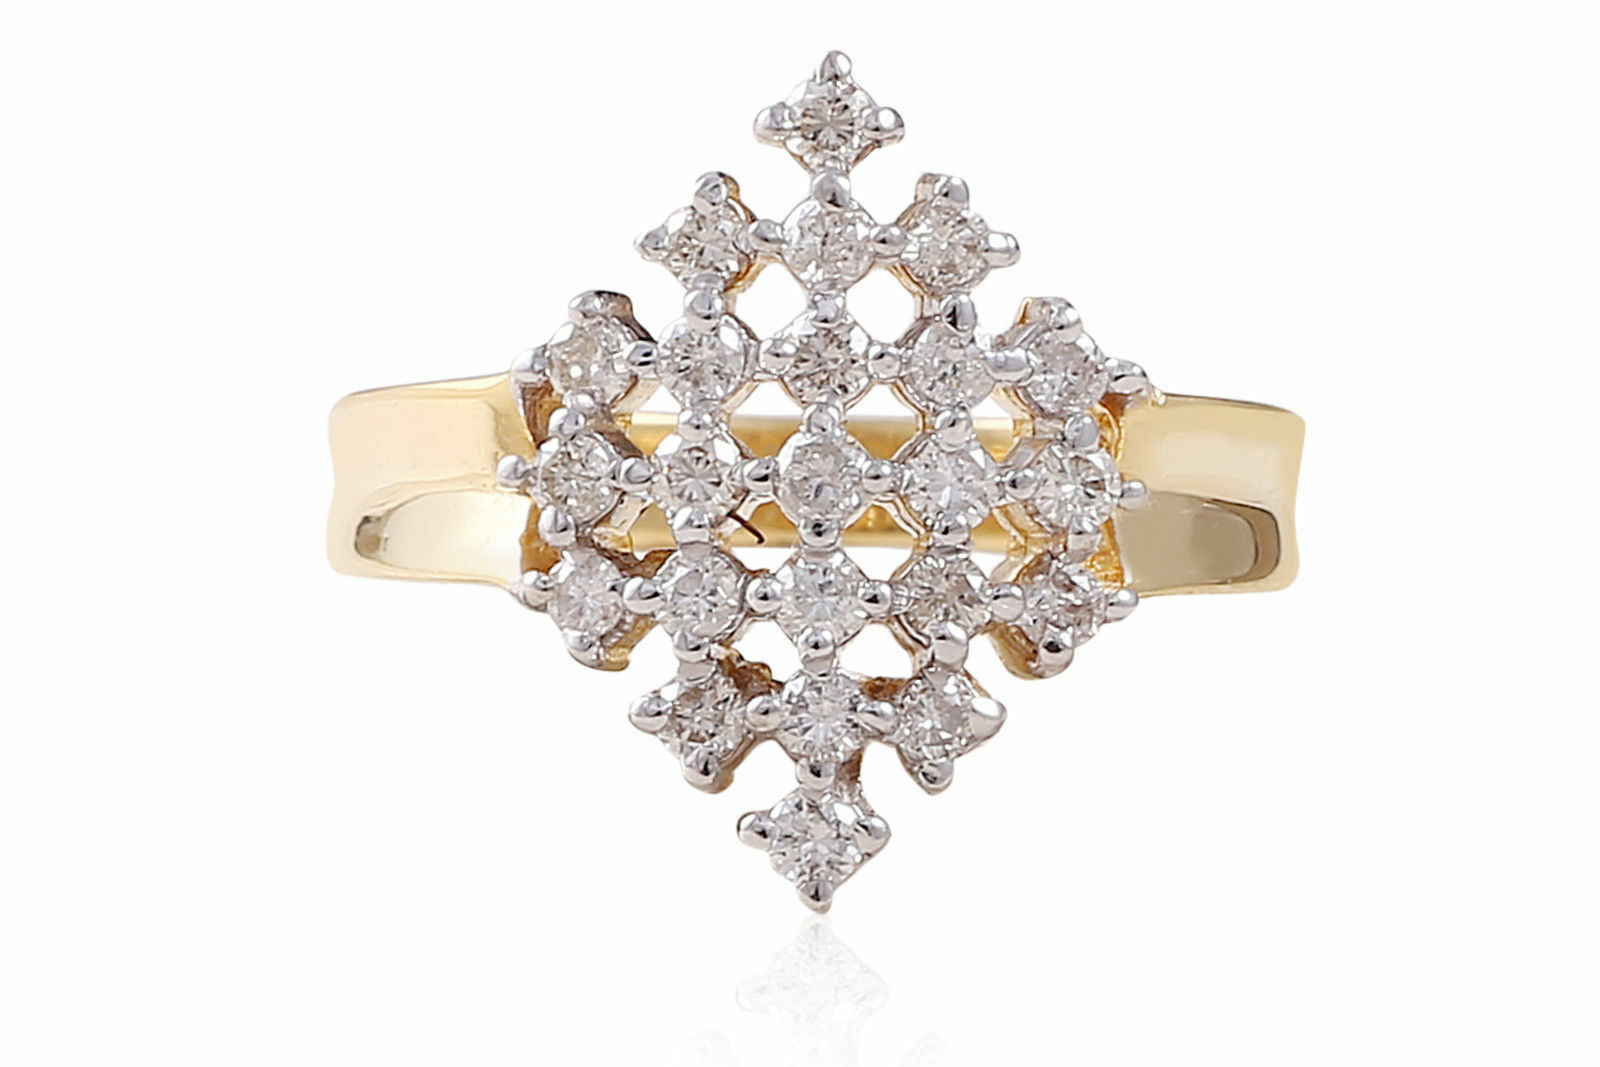 Pave 0.69 Cts Round Brilliant Cut Natural Diamonds Anniversary Ring In 18K gold